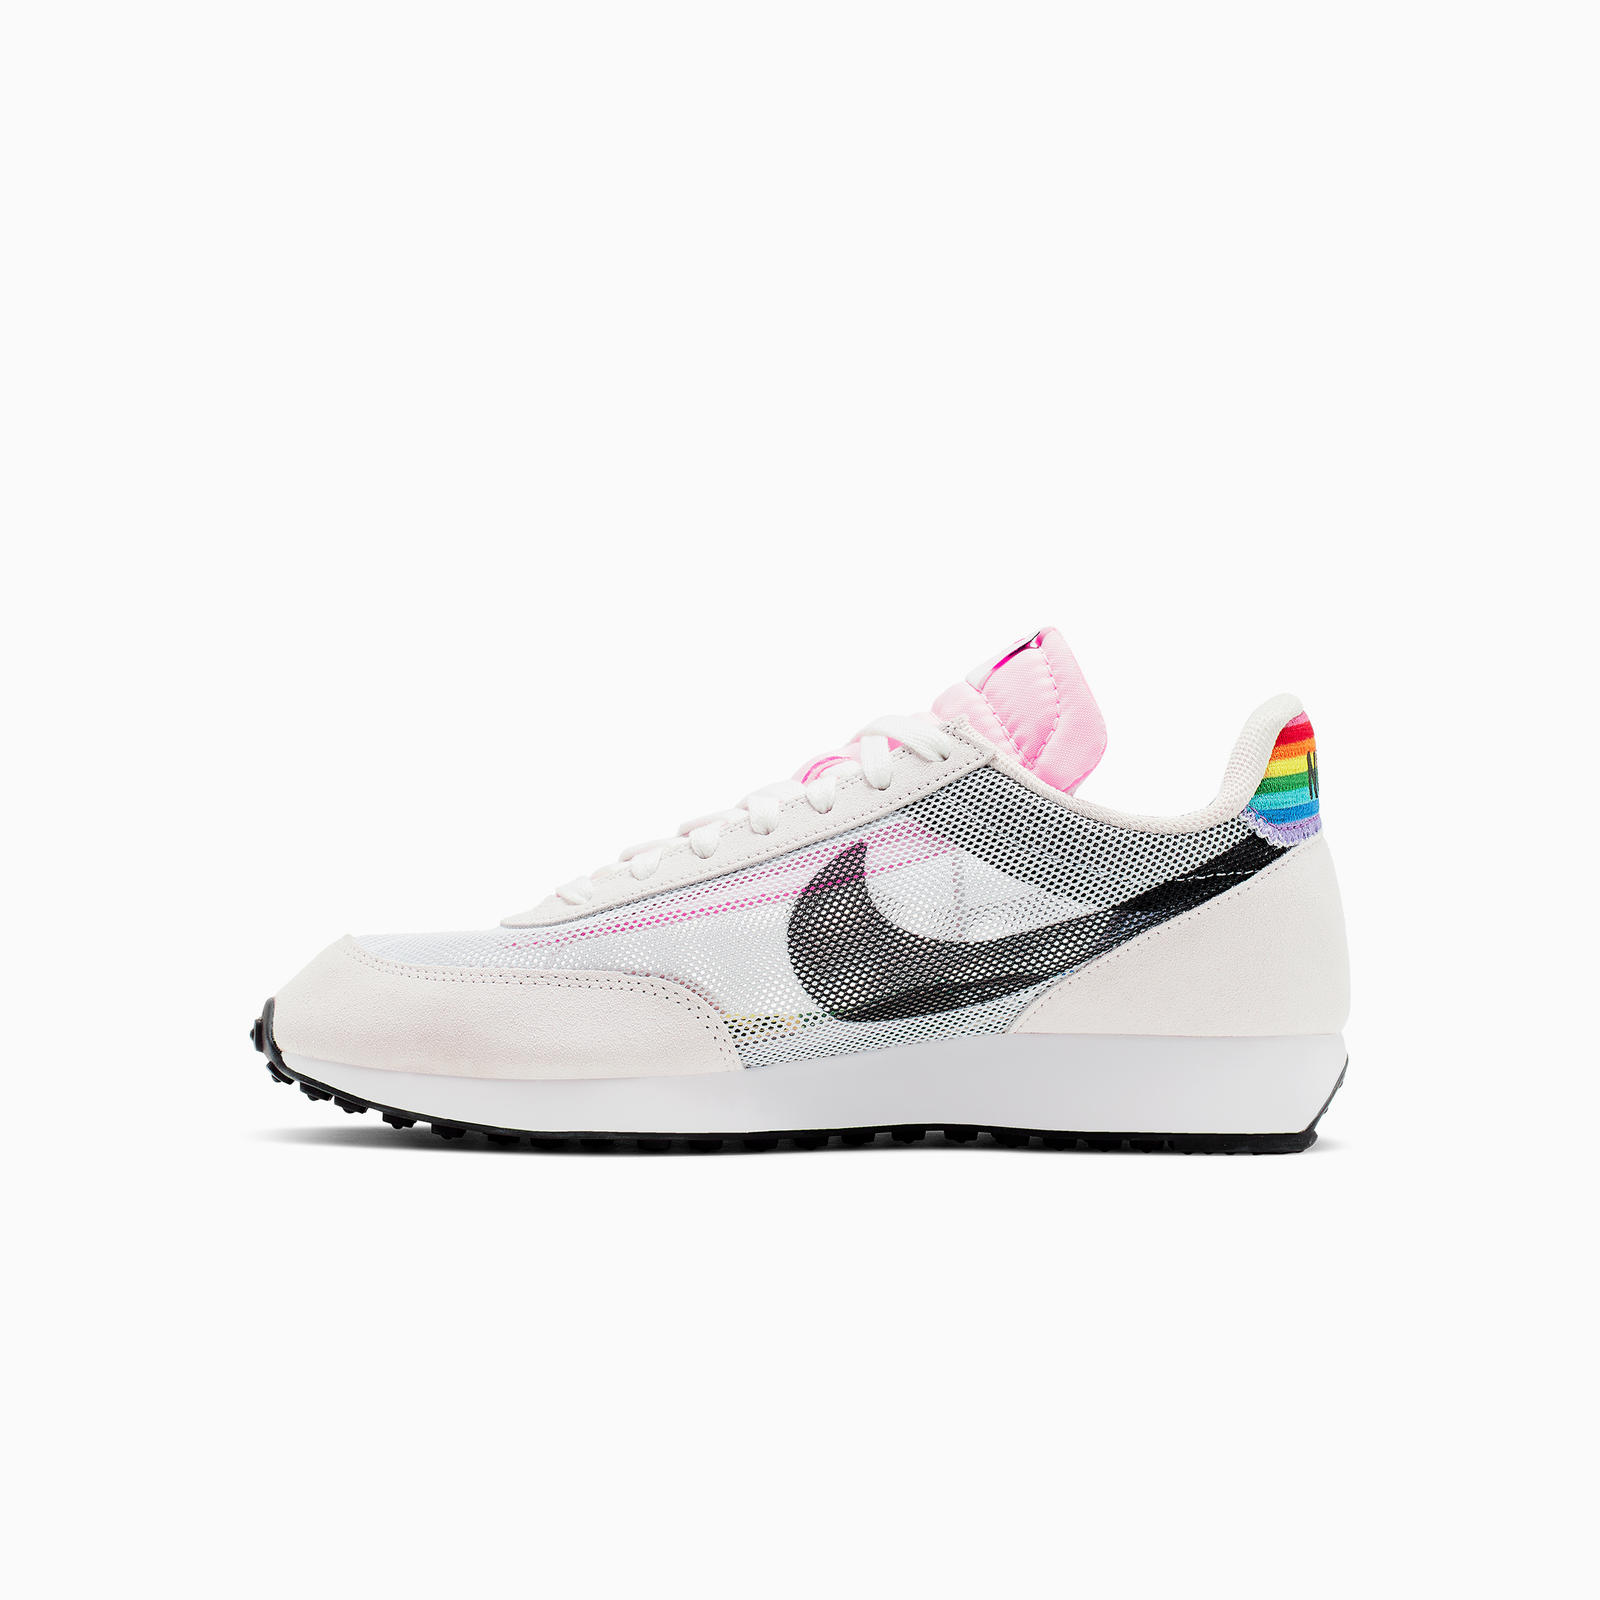 Nike 2019 BETRUE Collection Nike News